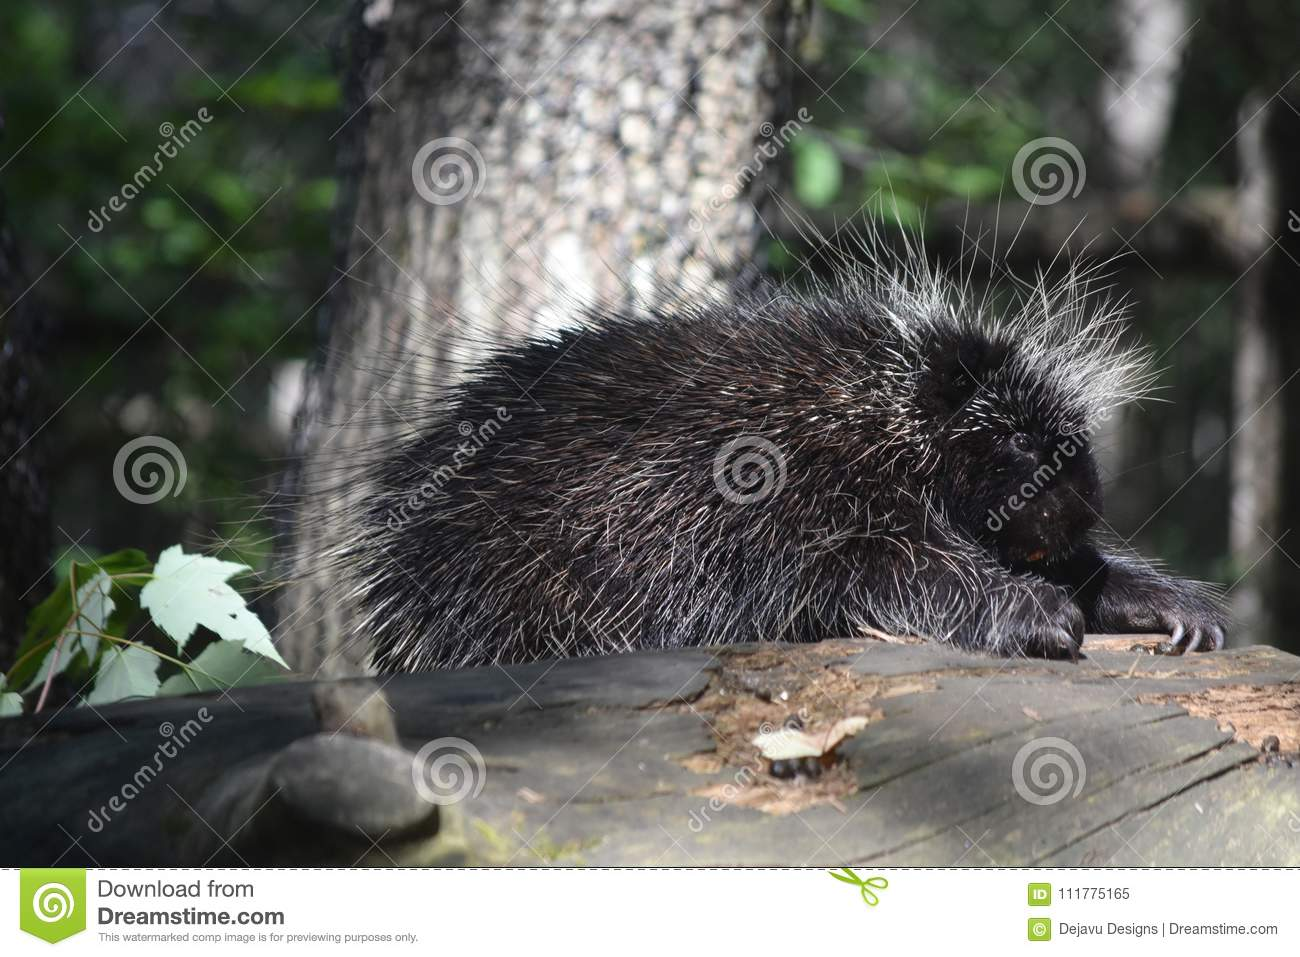 North American Porcupine climbing over a log in the woods